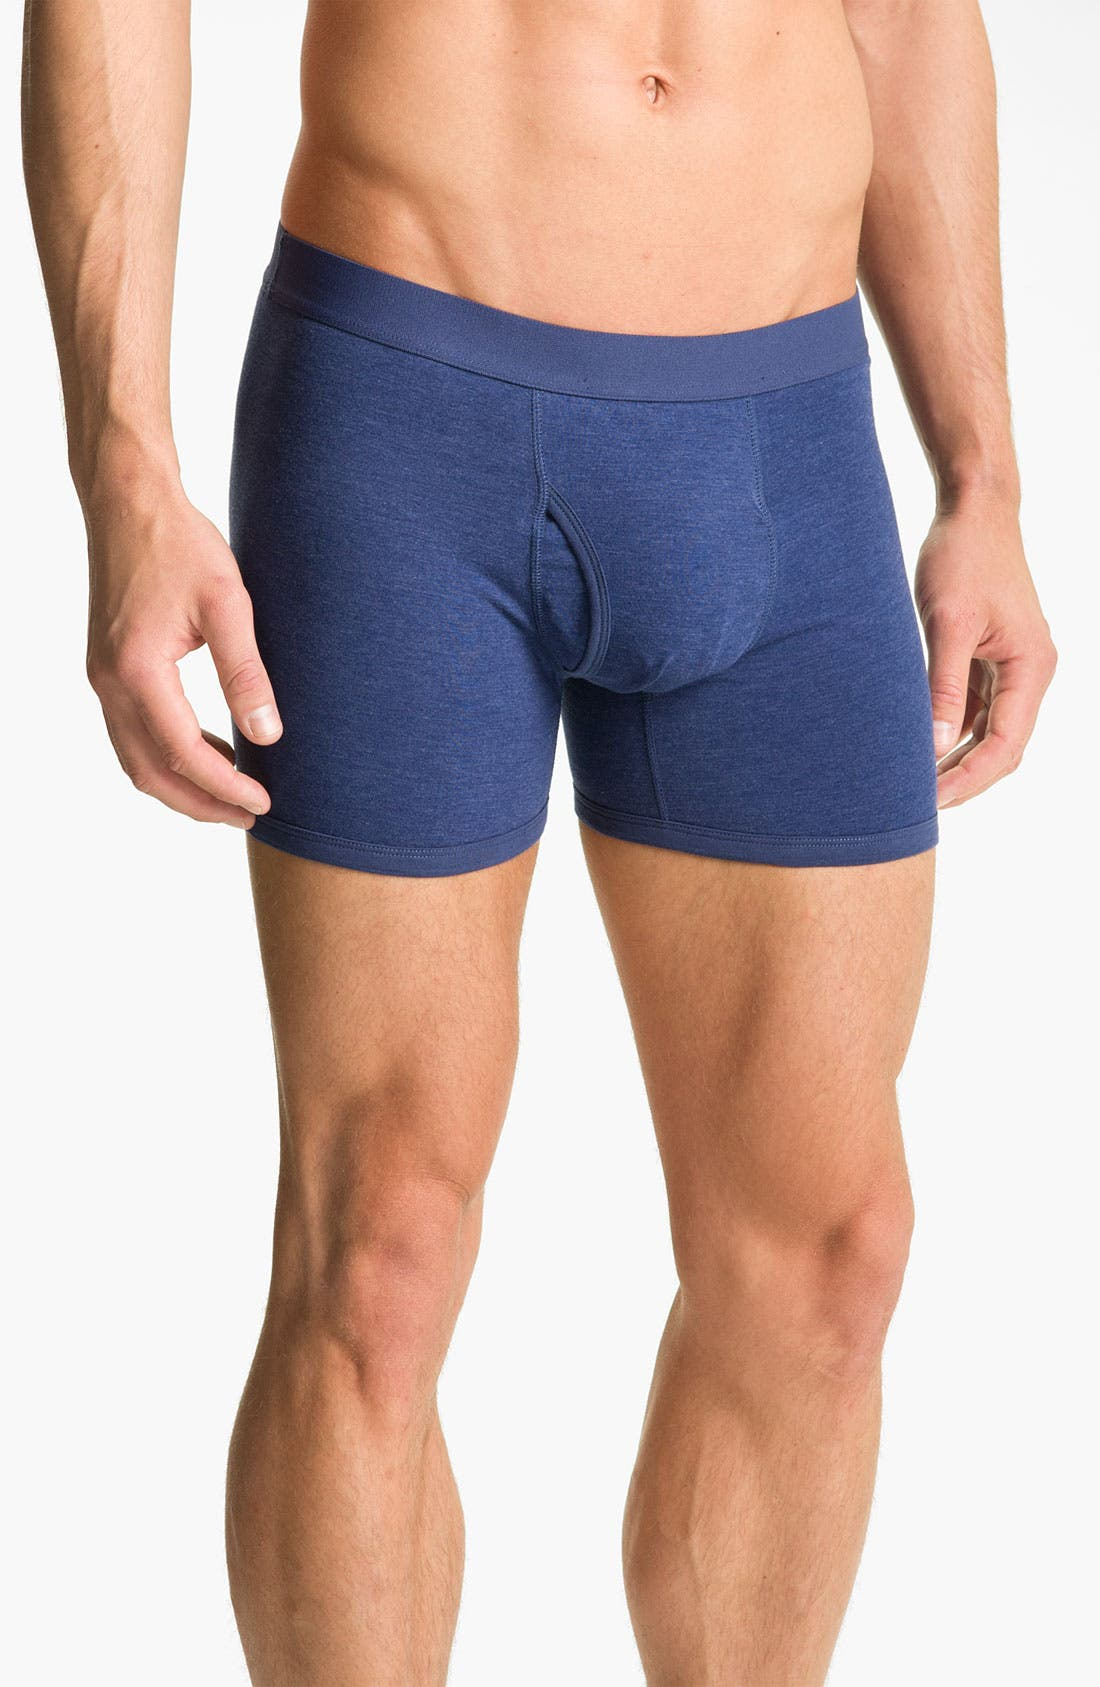 Alternate Image 4  - Basic Underwear Solid Boxer Briefs (3-Pack)